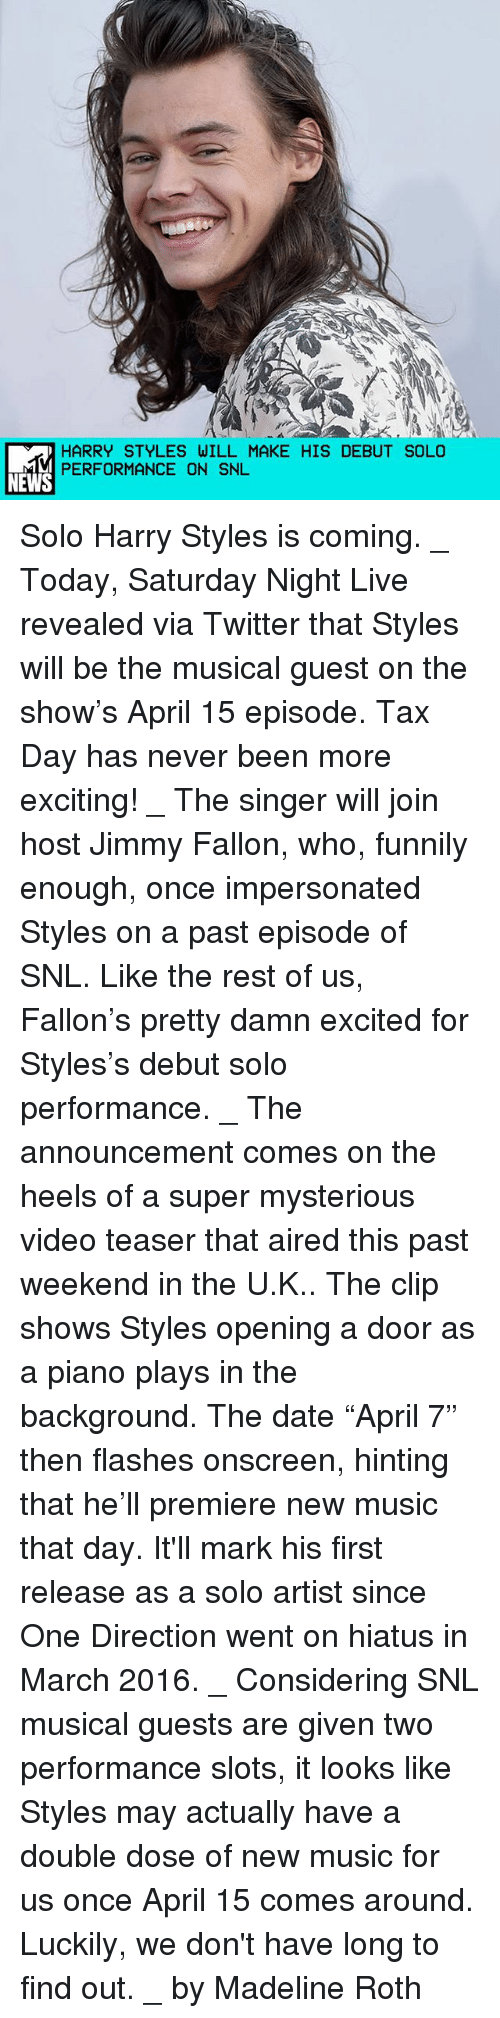 "Memes, 🤖, and Super: HARRY STYLES WILL MAKE HIS DEBUT SOLO  PERFORMANCE ON SNL  NEWS Solo Harry Styles is coming. _ Today, Saturday Night Live revealed via Twitter that Styles will be the musical guest on the show's April 15 episode. Tax Day has never been more exciting! _ The singer will join host Jimmy Fallon, who, funnily enough, once impersonated Styles on a past episode of SNL. Like the rest of us, Fallon's pretty damn excited for Styles's debut solo performance. _ The announcement comes on the heels of a super mysterious video teaser that aired this past weekend in the U.K.. The clip shows Styles opening a door as a piano plays in the background. The date ""April 7"" then flashes onscreen, hinting that he'll premiere new music that day. It'll mark his first release as a solo artist since One Direction went on hiatus in March 2016. _ Considering SNL musical guests are given two performance slots, it looks like Styles may actually have a double dose of new music for us once April 15 comes around. Luckily, we don't have long to find out. _ by Madeline Roth"